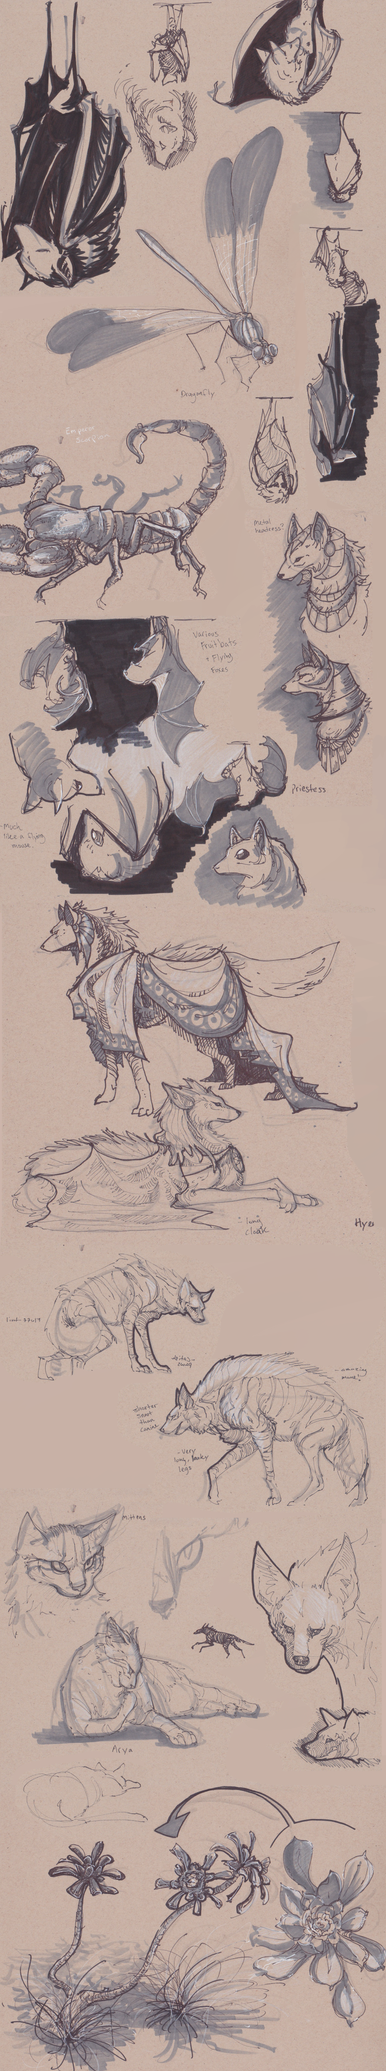 Sketchdump by BandanaChick